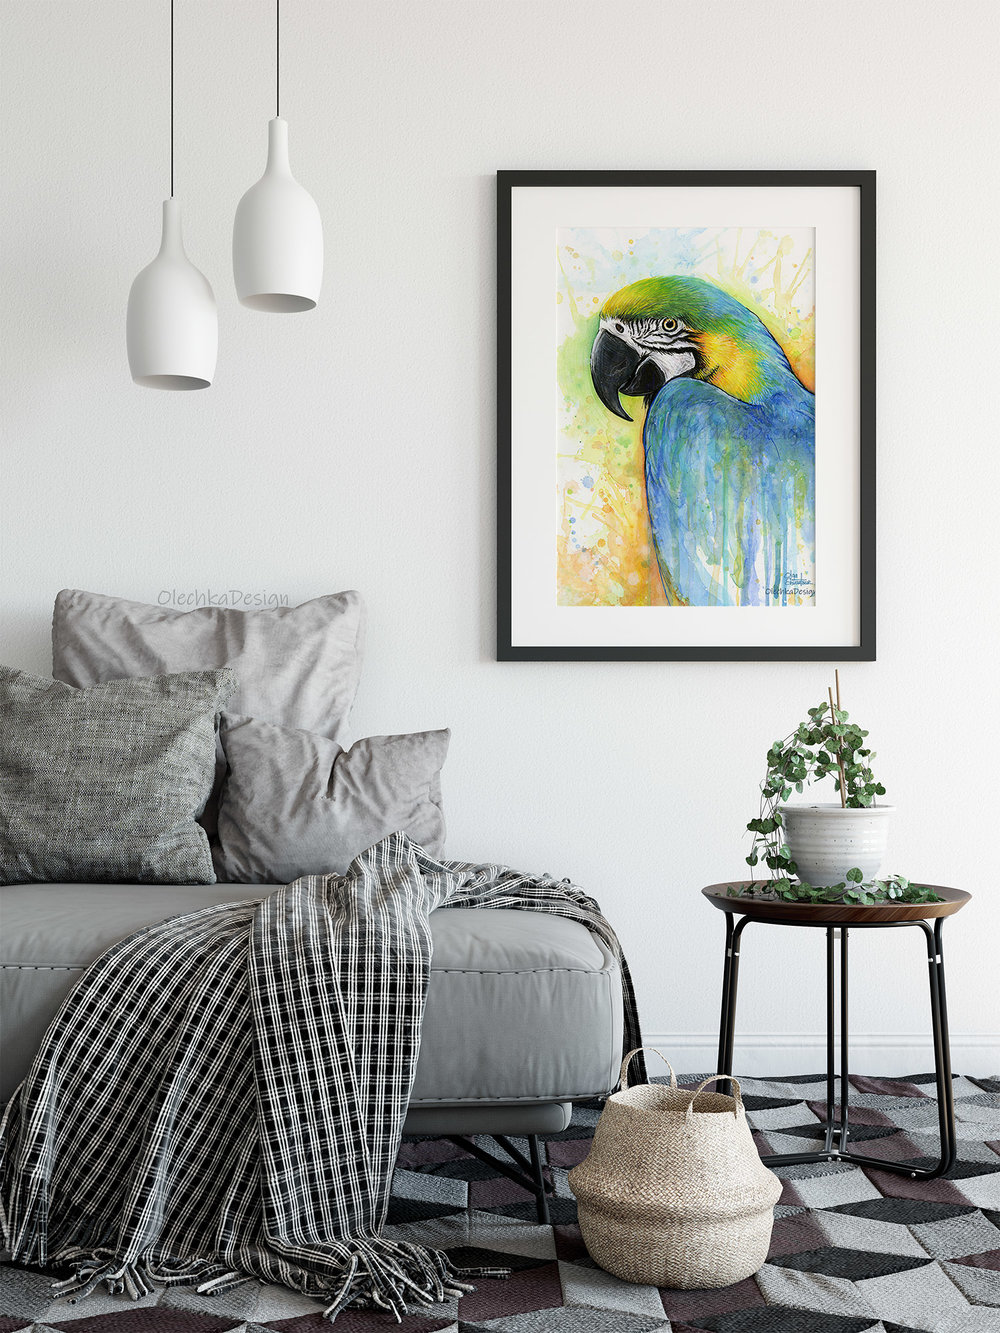 Macaw-wall-art.jpg